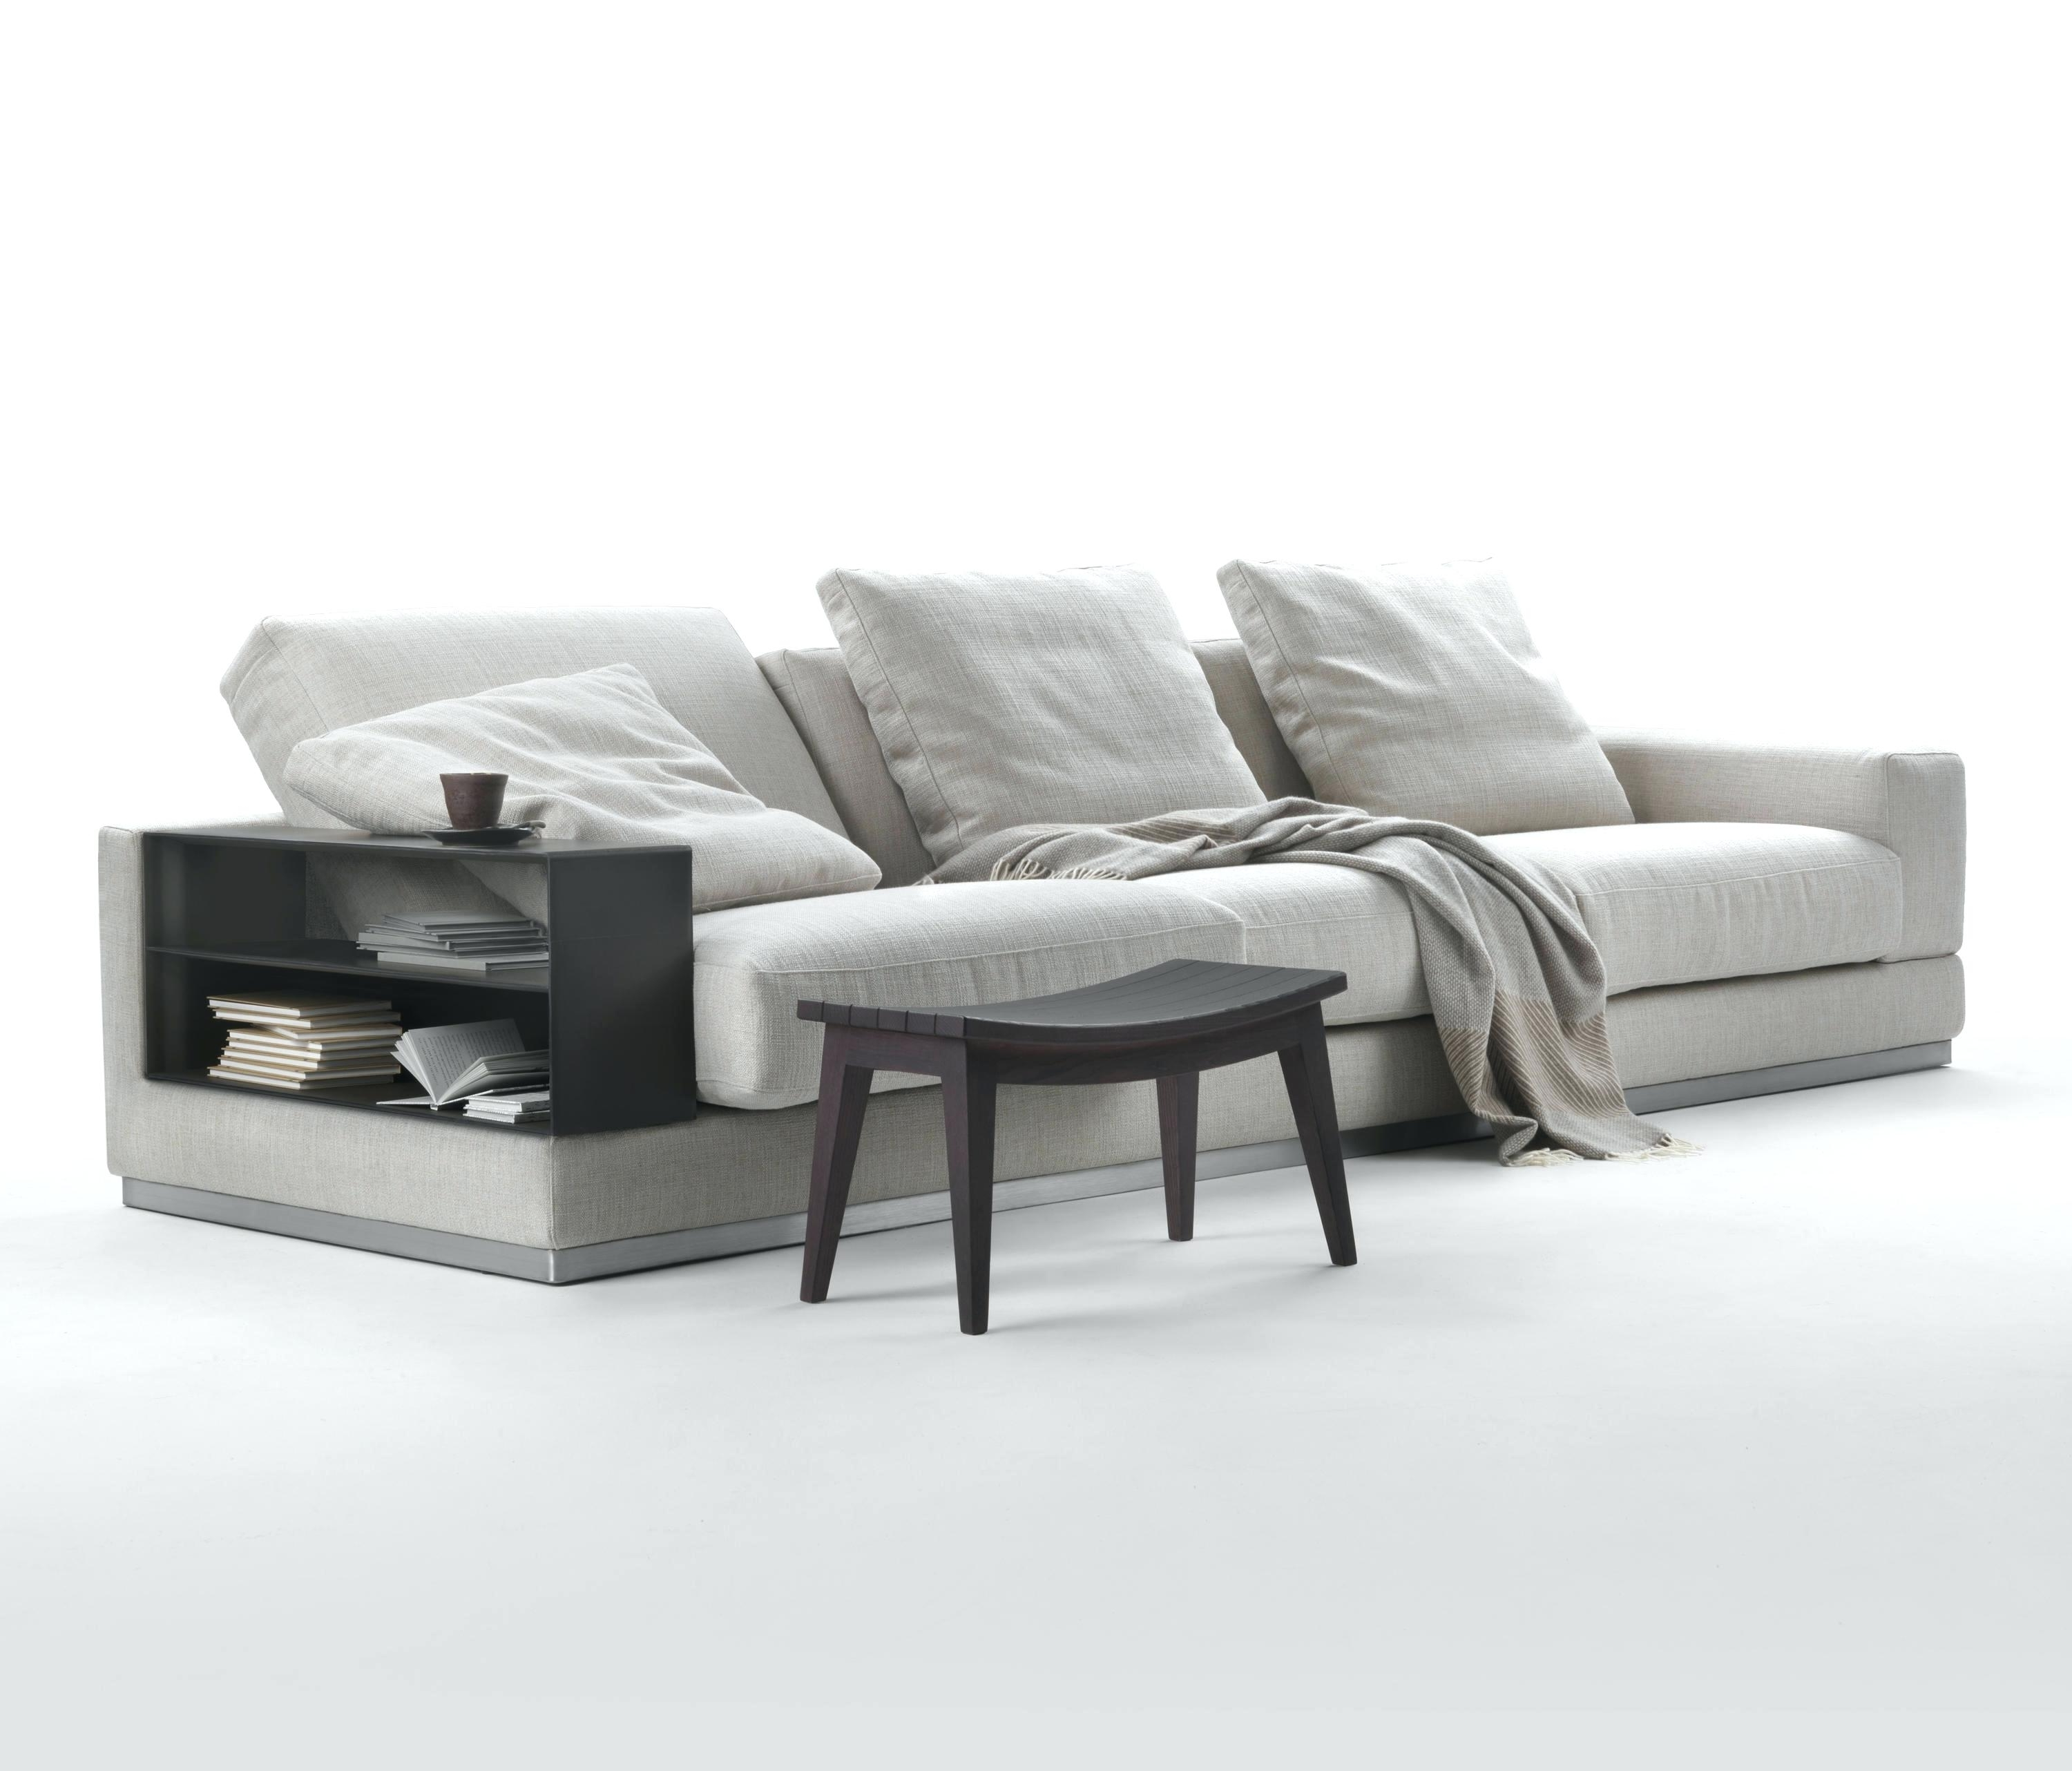 20 The Best Kijiji London Sectional Sofas